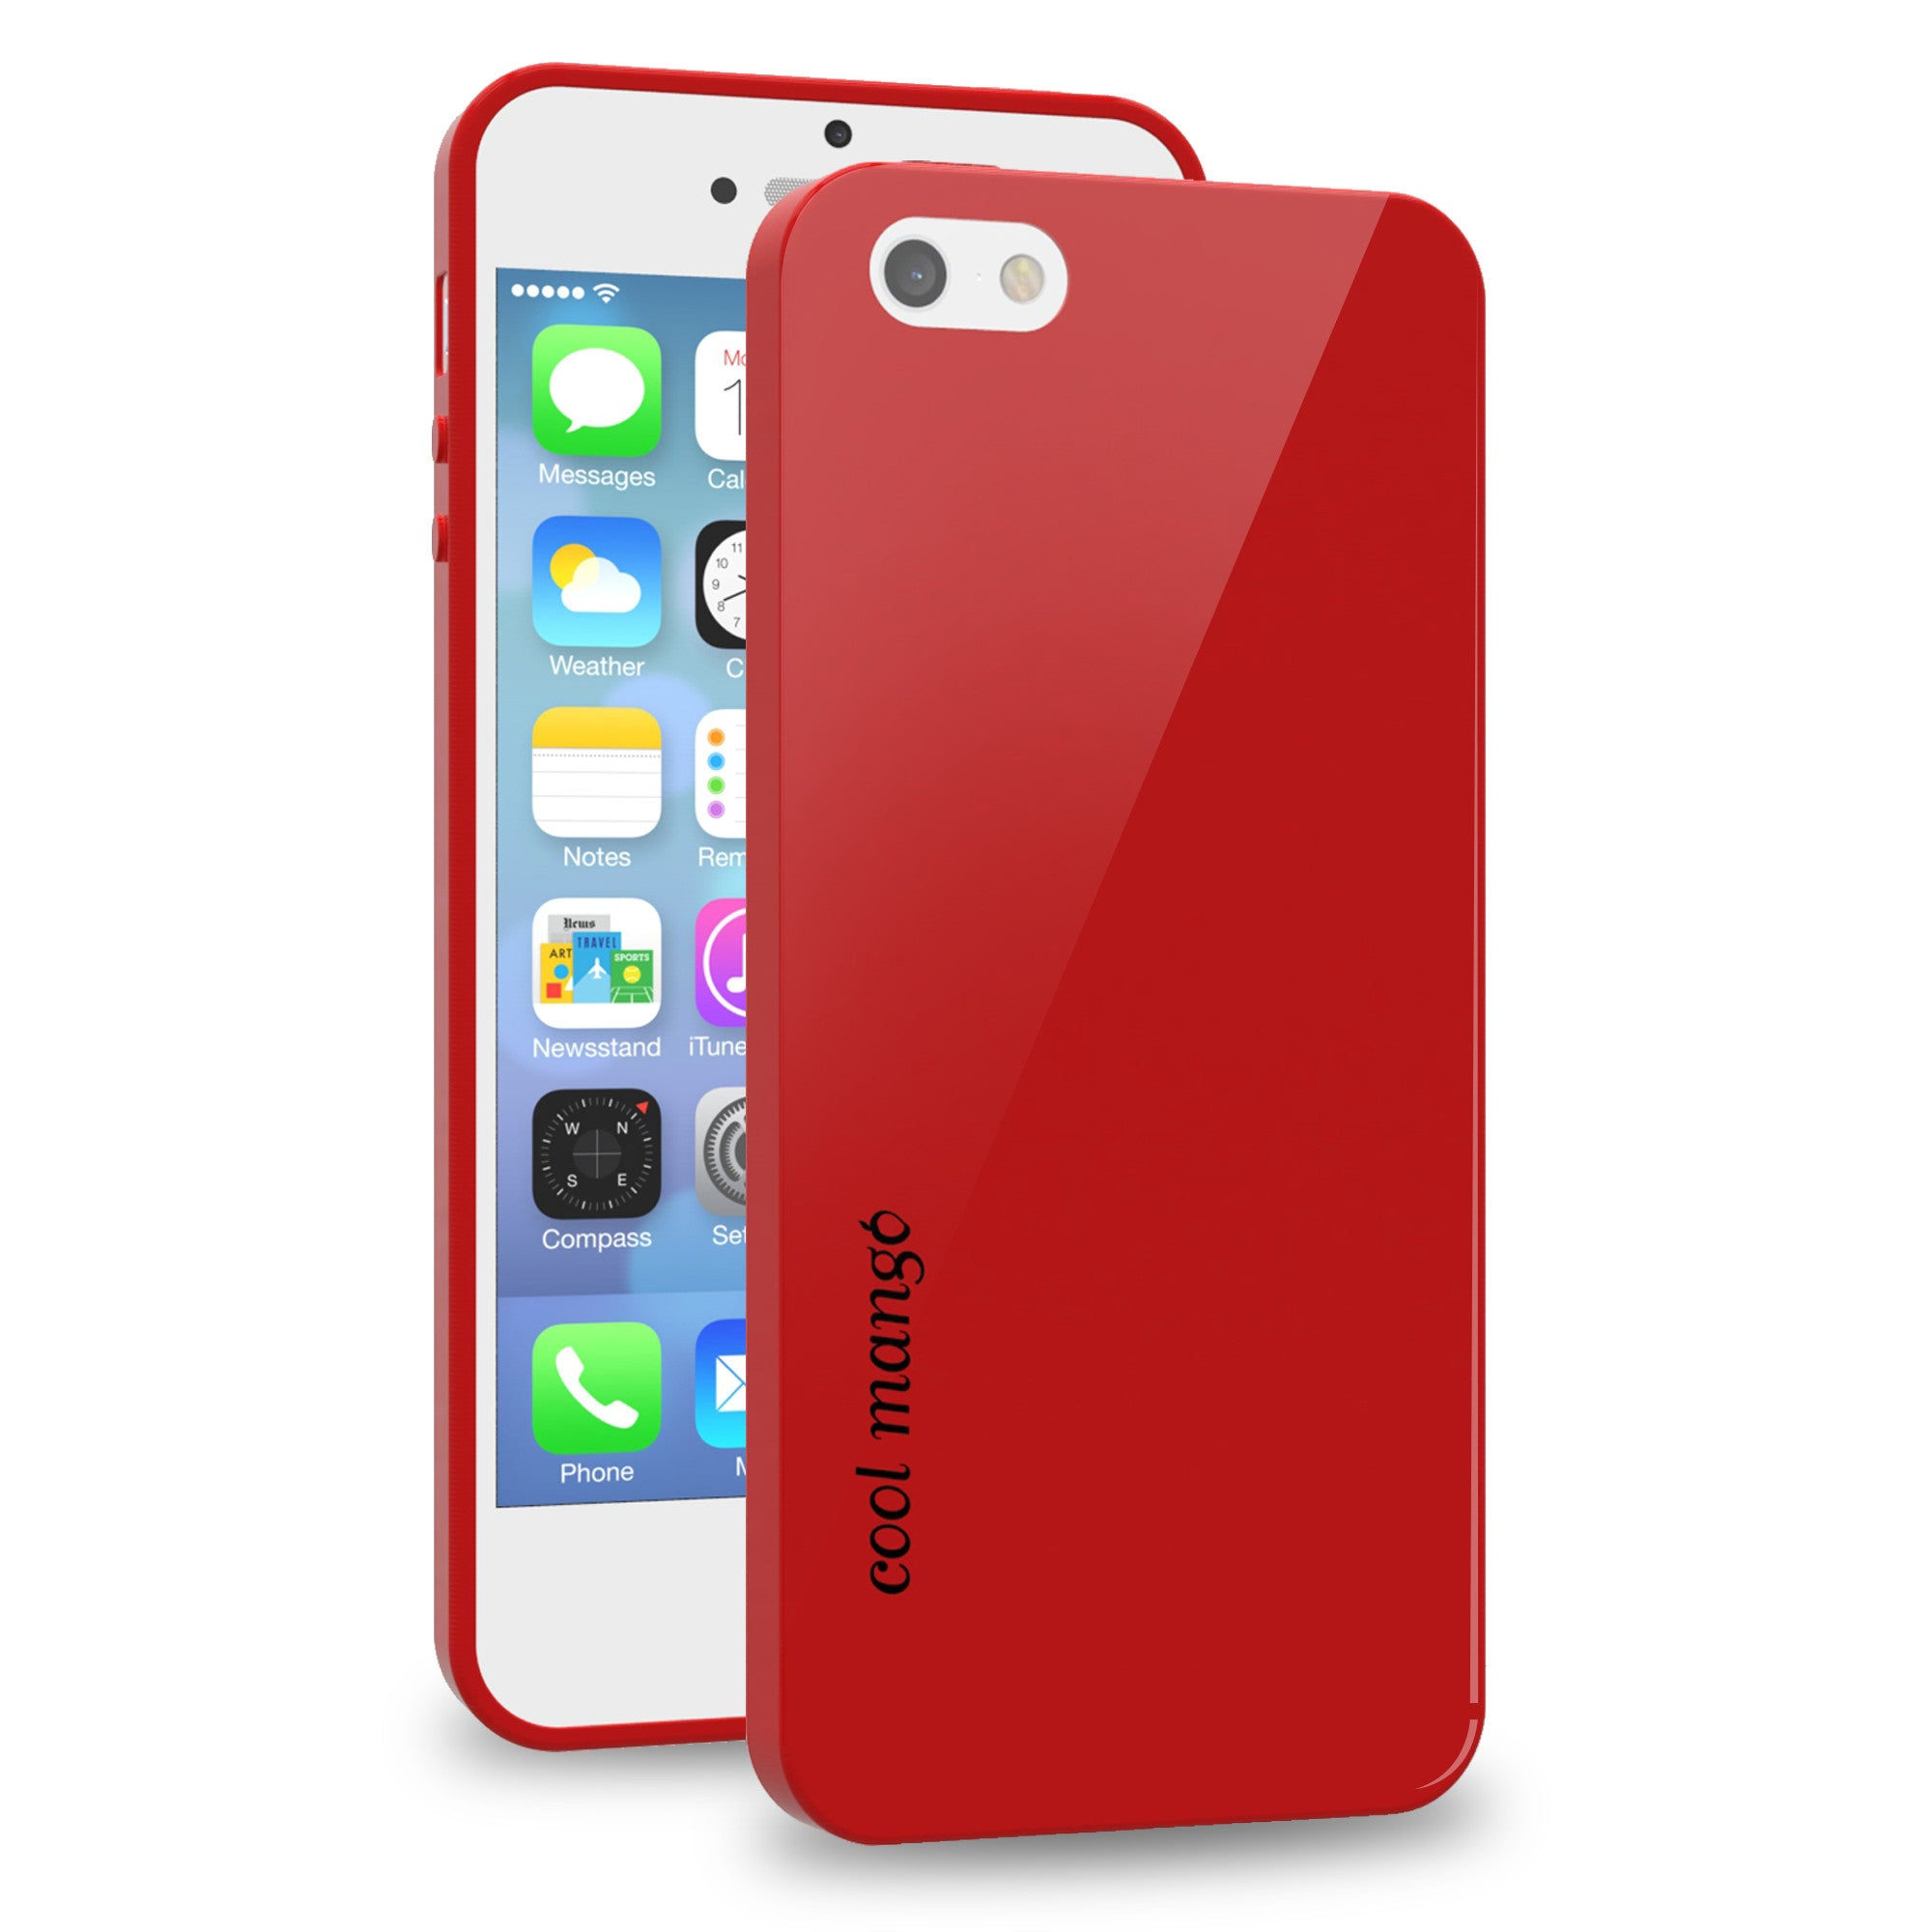 FlexiGel Back Cover for iPhone 5s / iPhone SE - Slim Fit, Flexible & Glossy – (Lava Red)